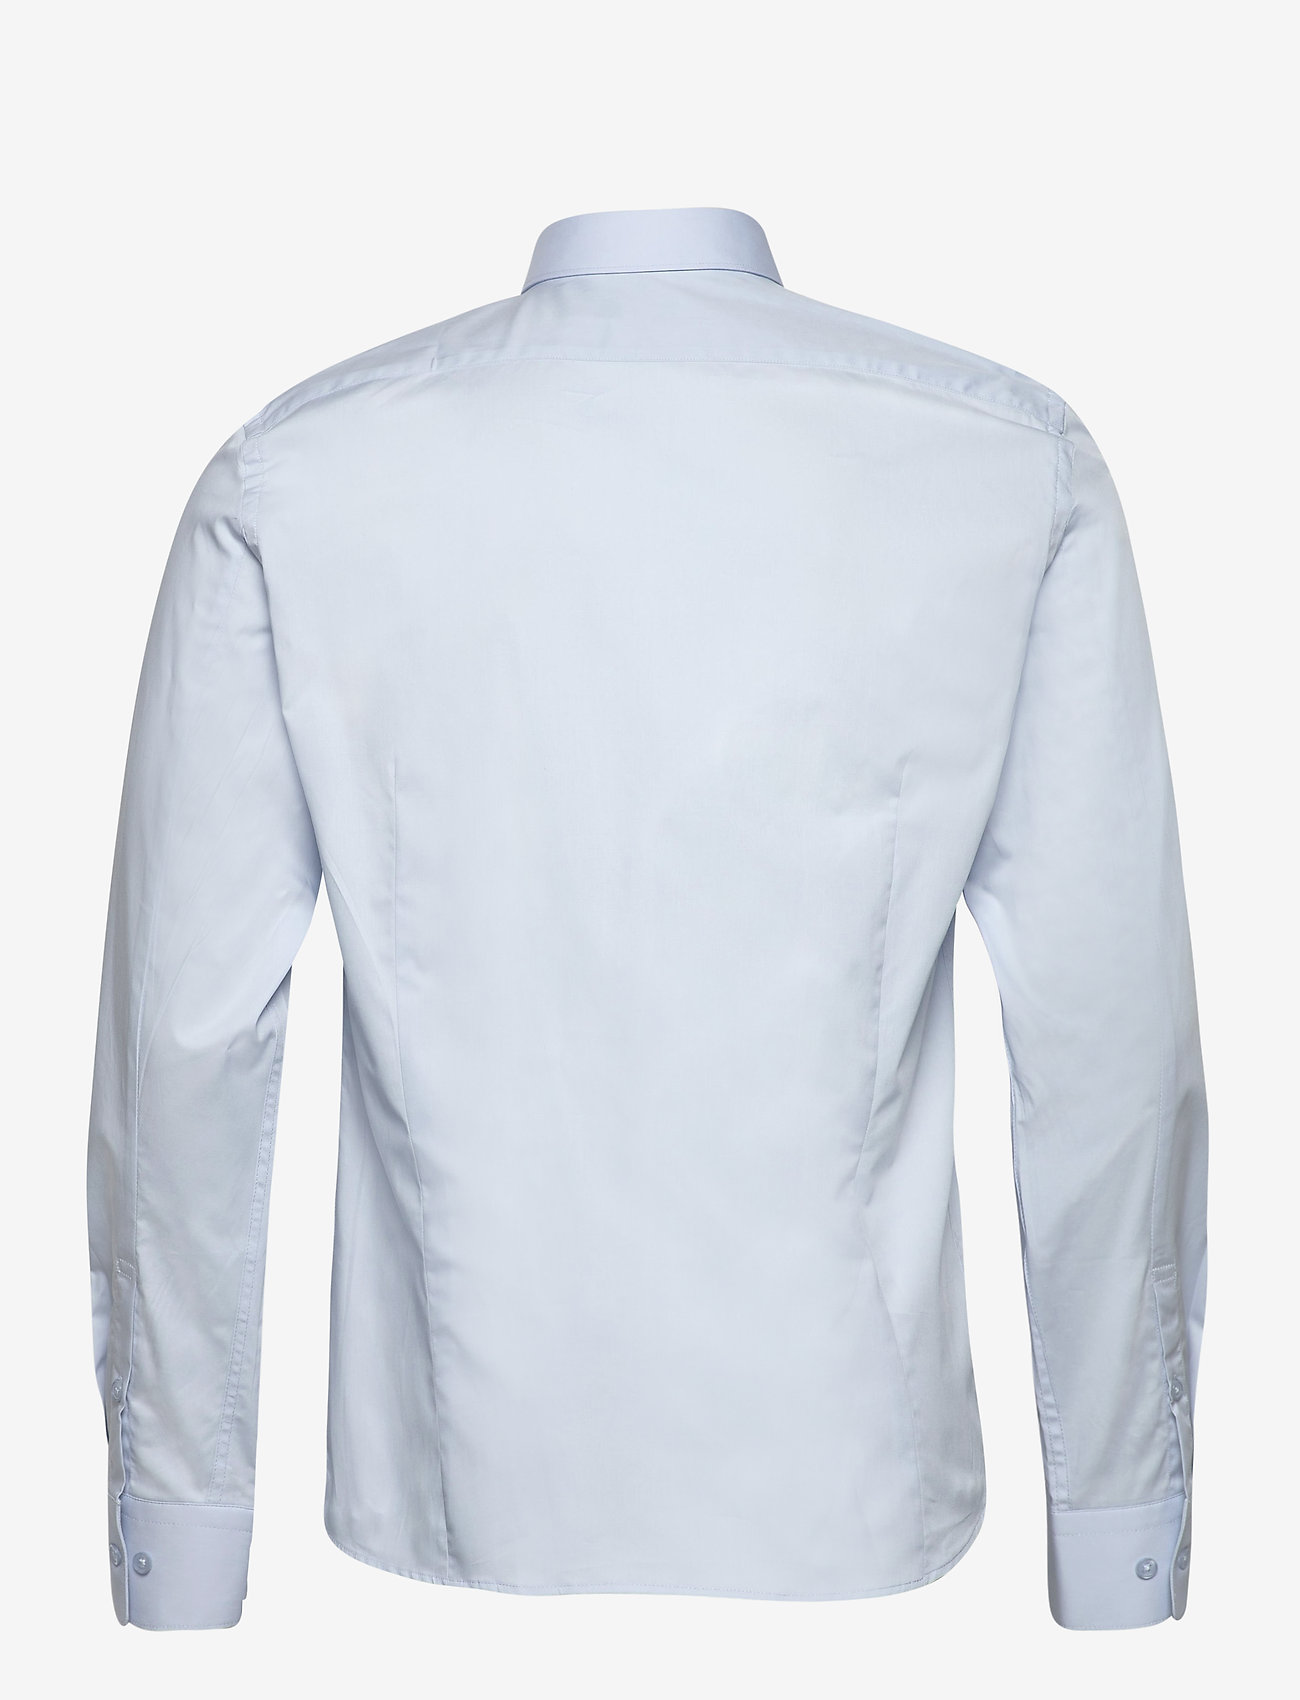 Filippa K M. Paul Stretch Shirt - Skjorter LIGHT BLUE - Menn Klær